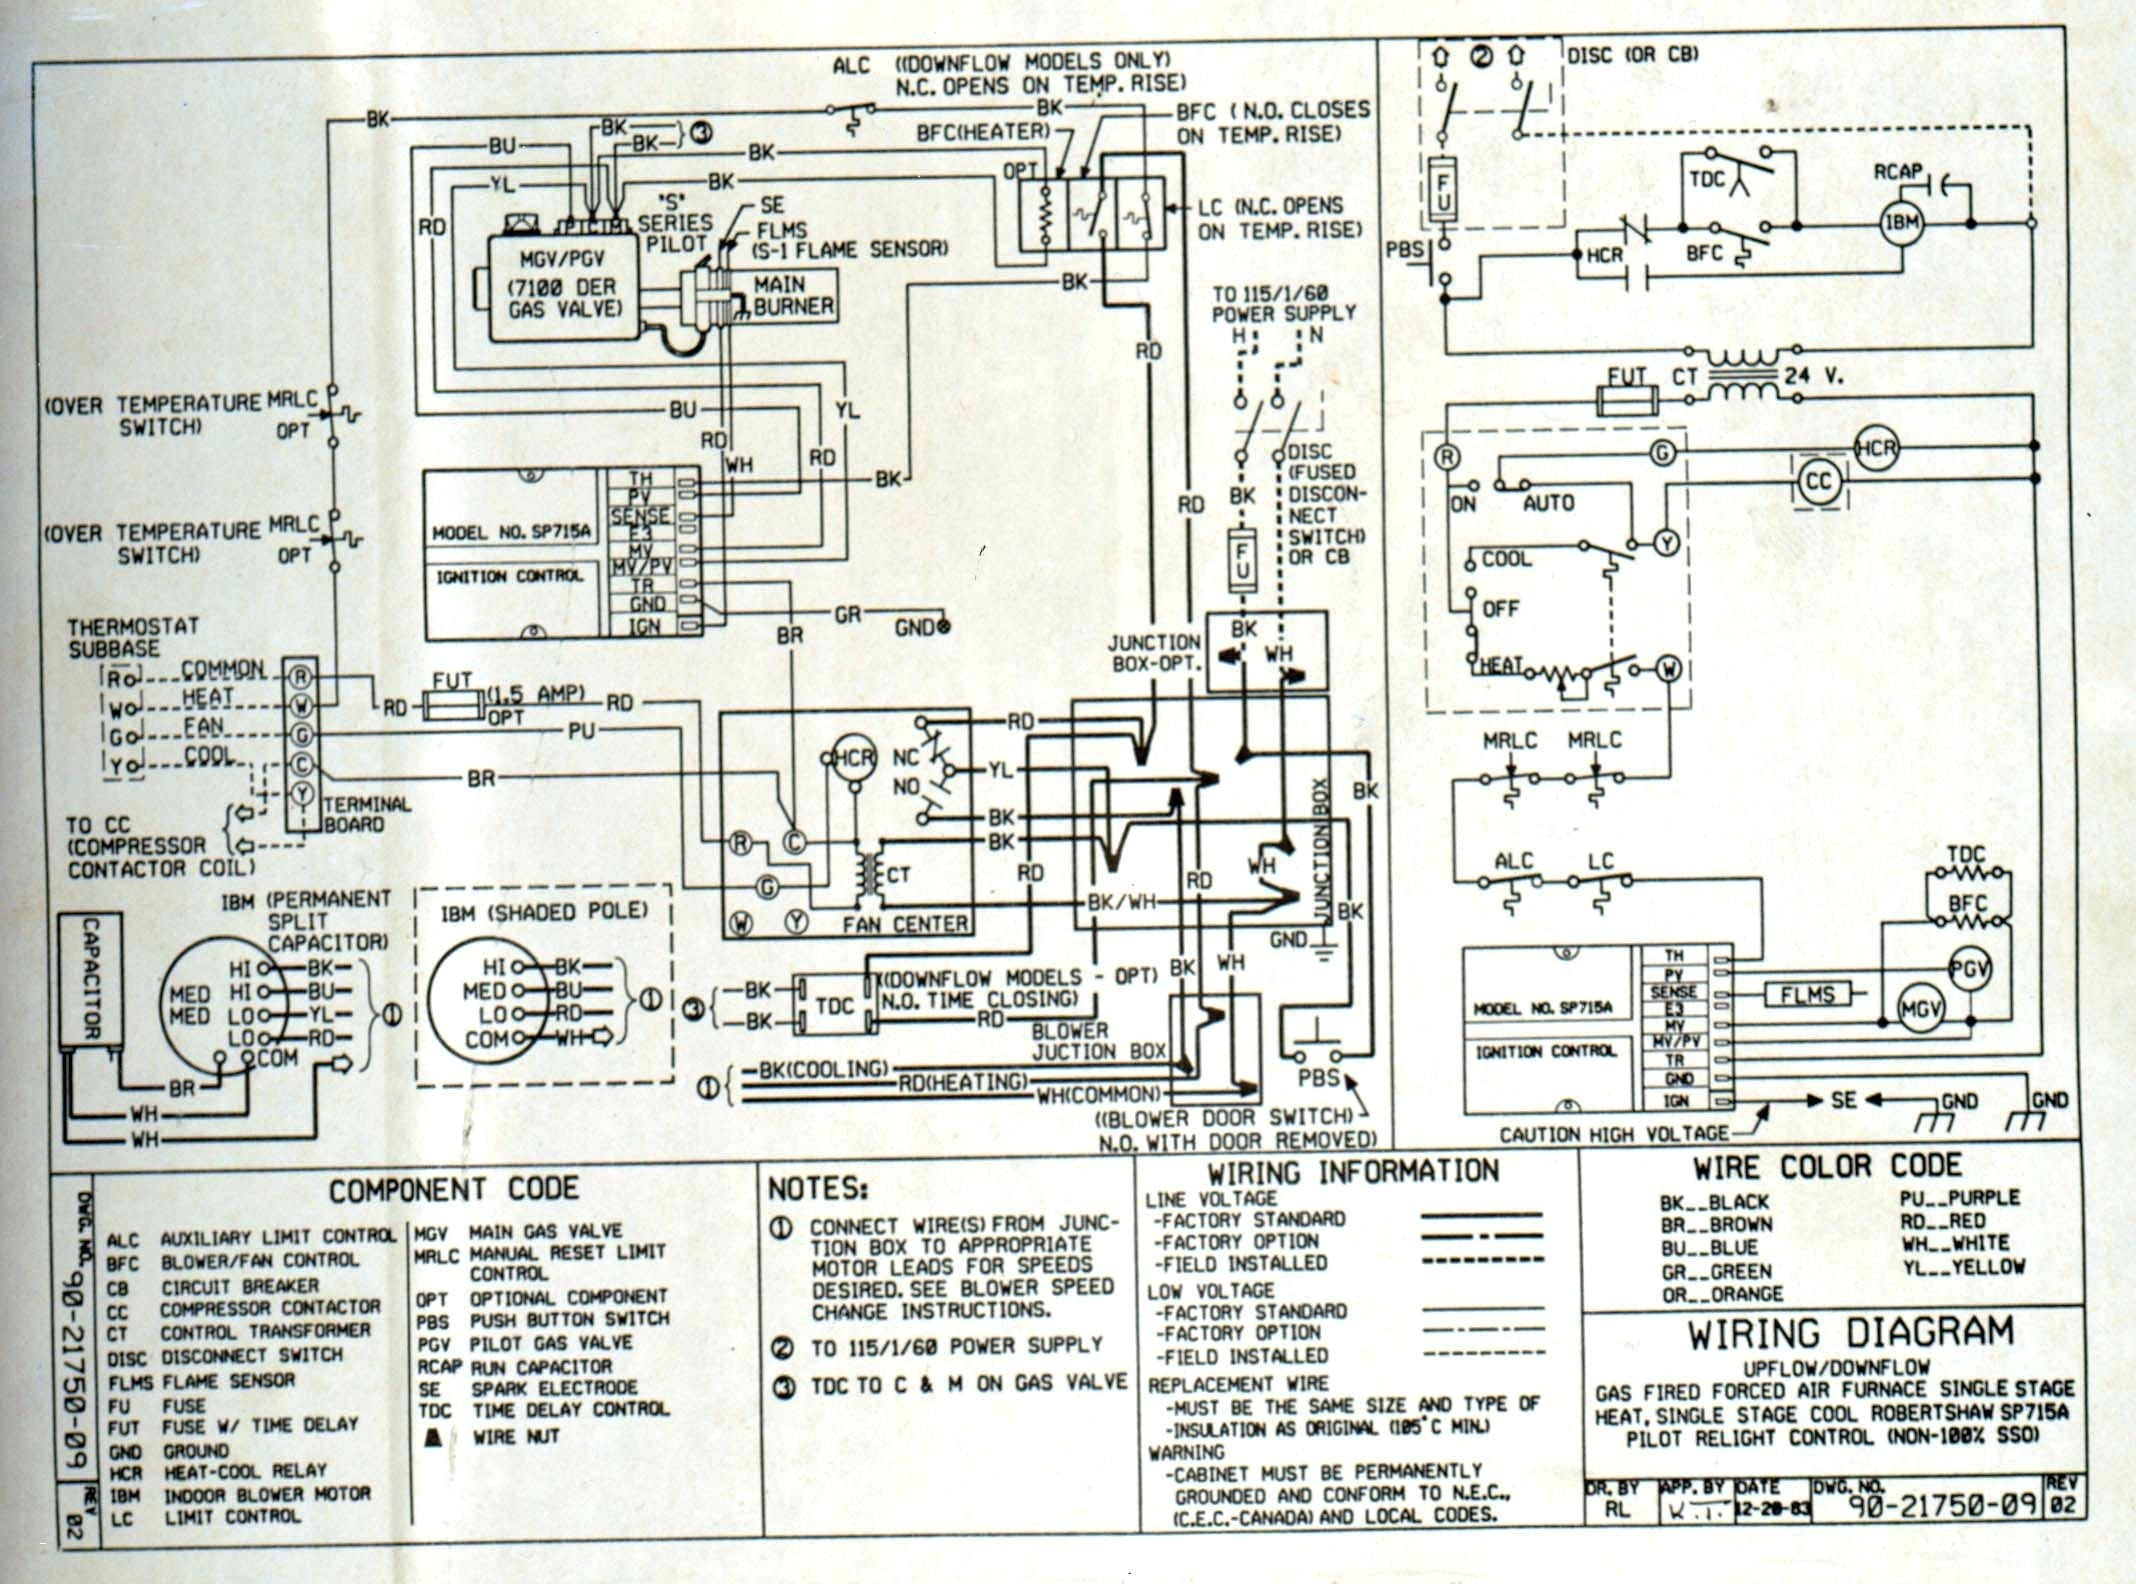 Electric Stove Wiring Diagram Free For Range Goodman Gas Furnace Collection Unique